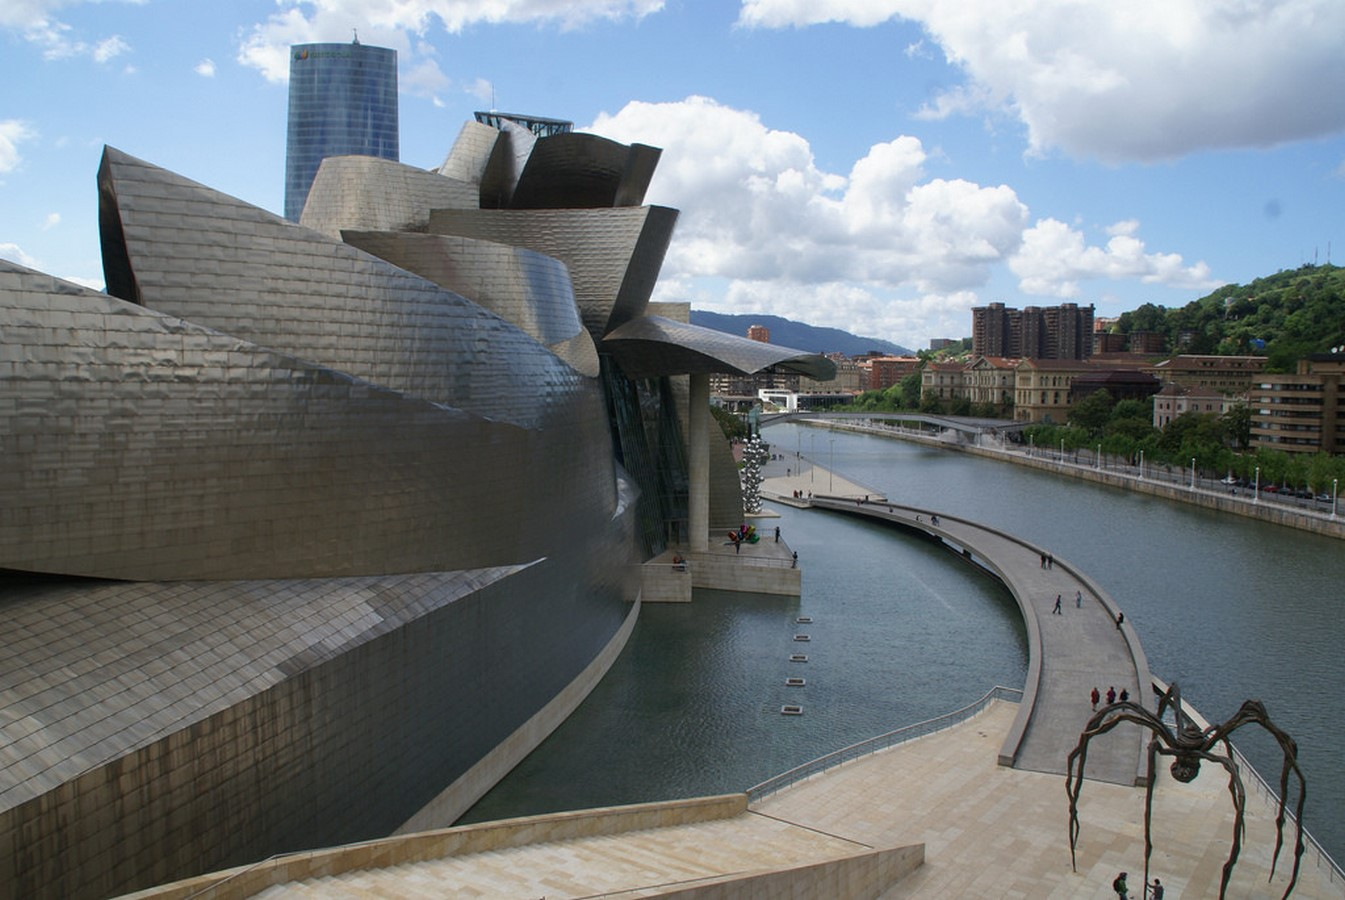 Guggenheim Museum Bilbao by Frank Gehry: United the Critics, Academics, and the General public - Sheet2